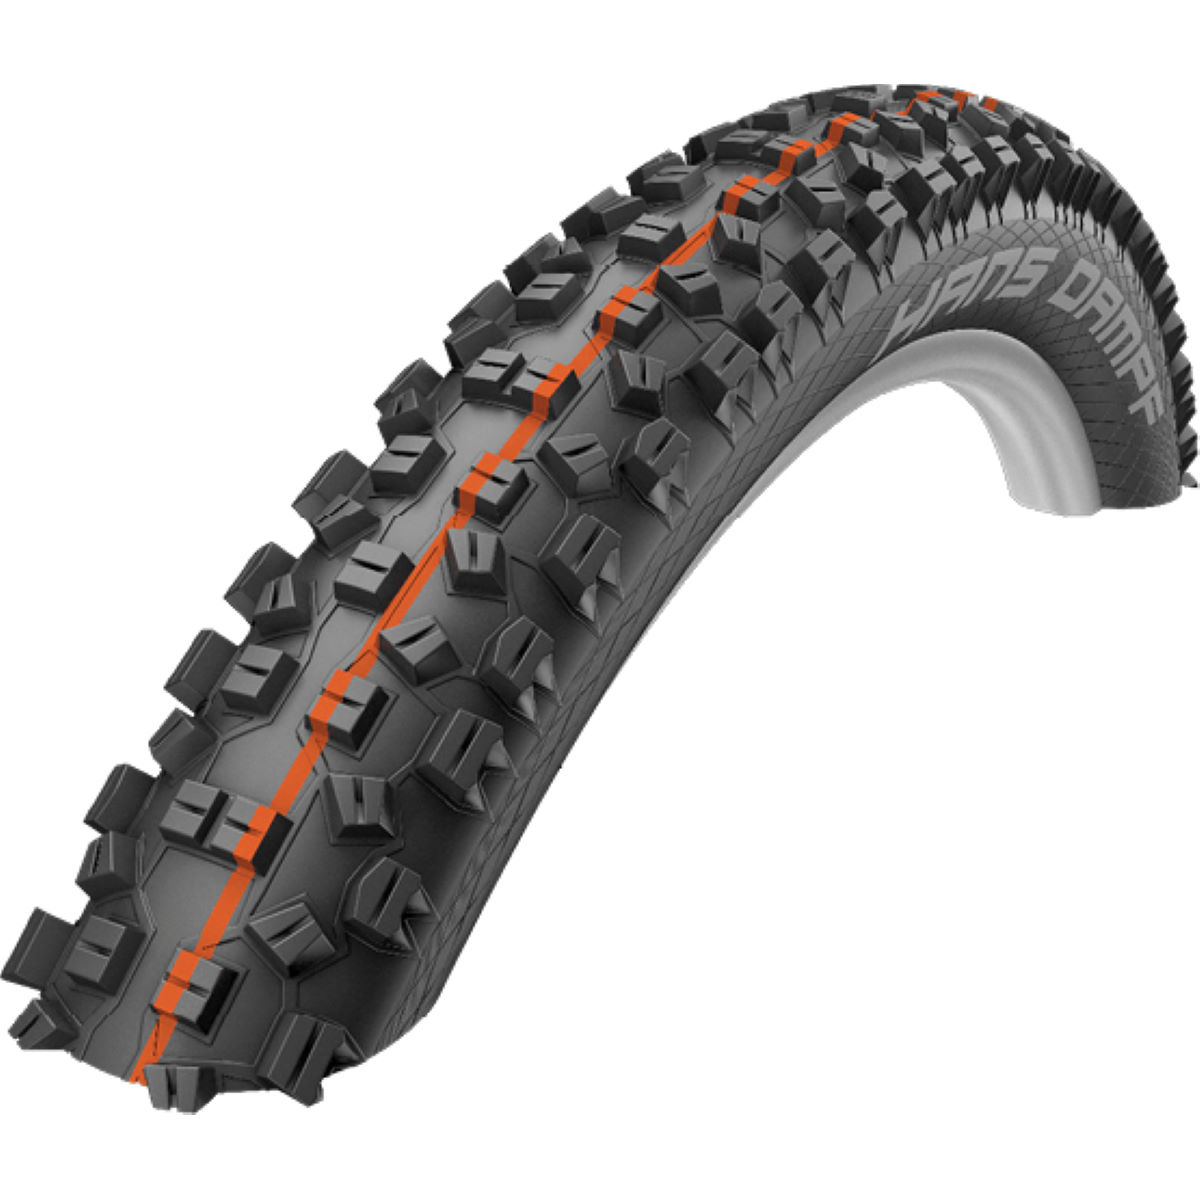 Pneu VTT Schwalbe Hans Dampf Addix SuperGravity - 26' 2.35' Folding Be